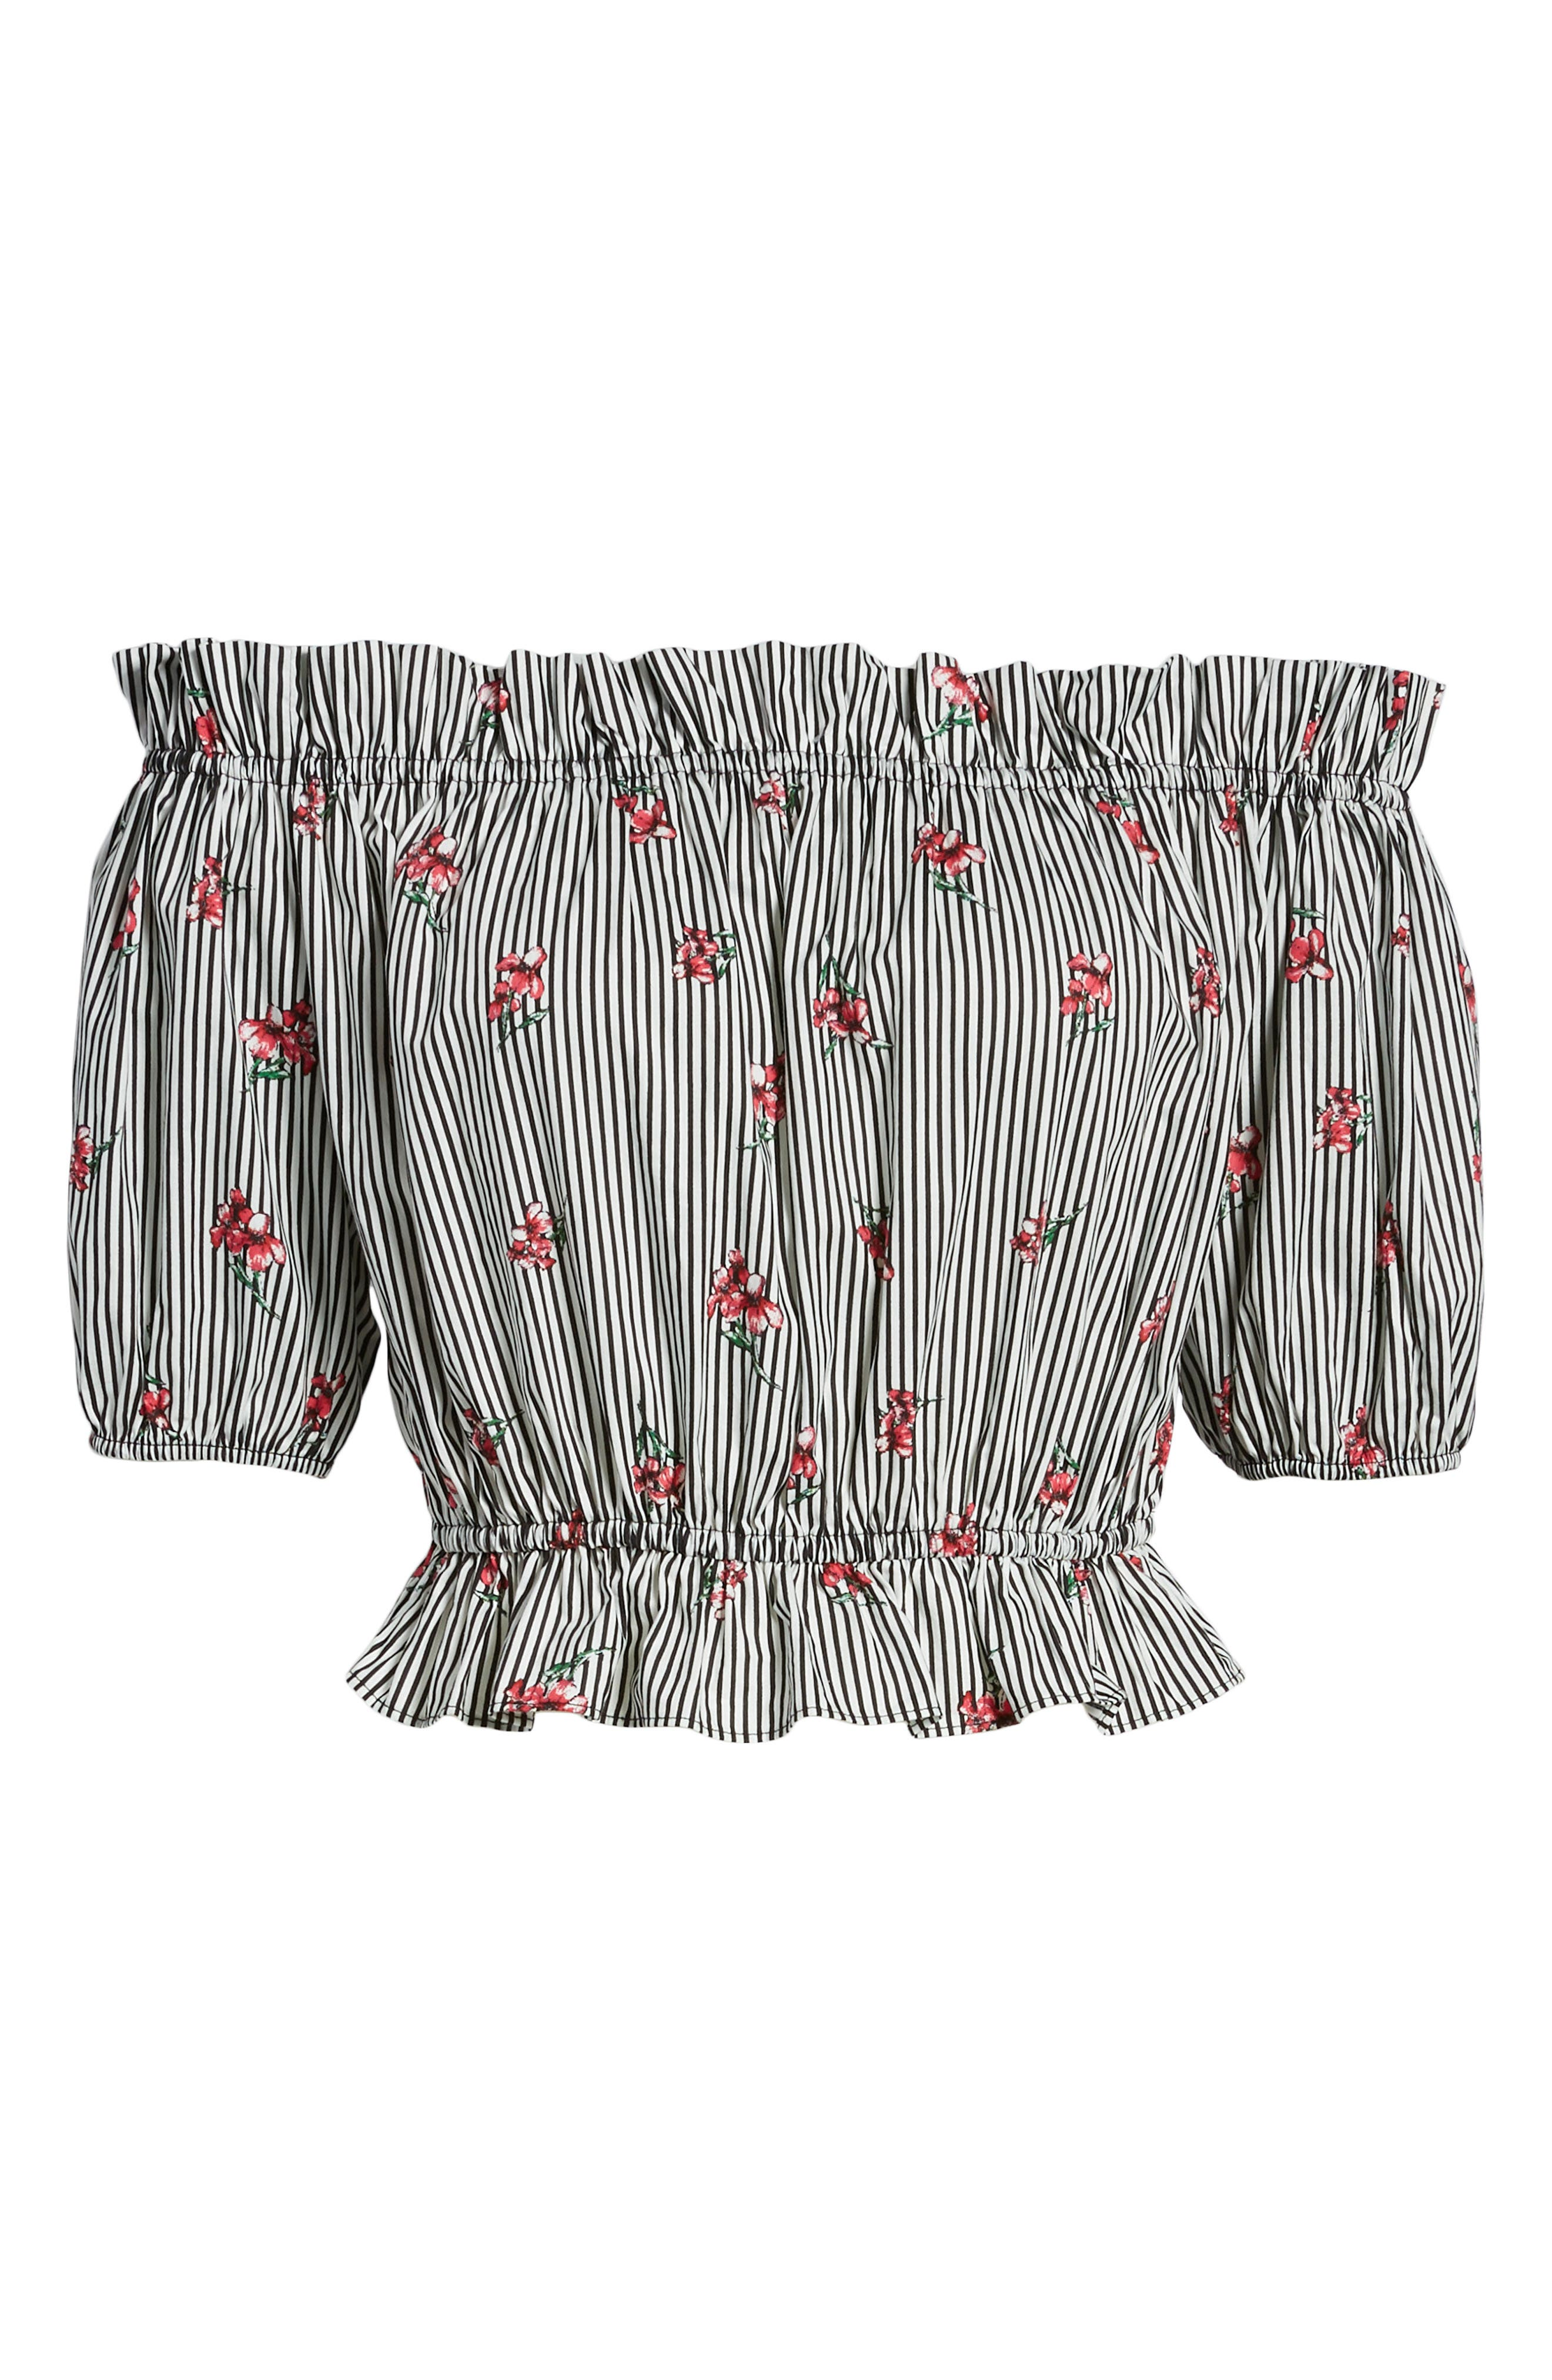 Floral Stripe Off the Shoulder Crop Top,                             Alternate thumbnail 7, color,                             001